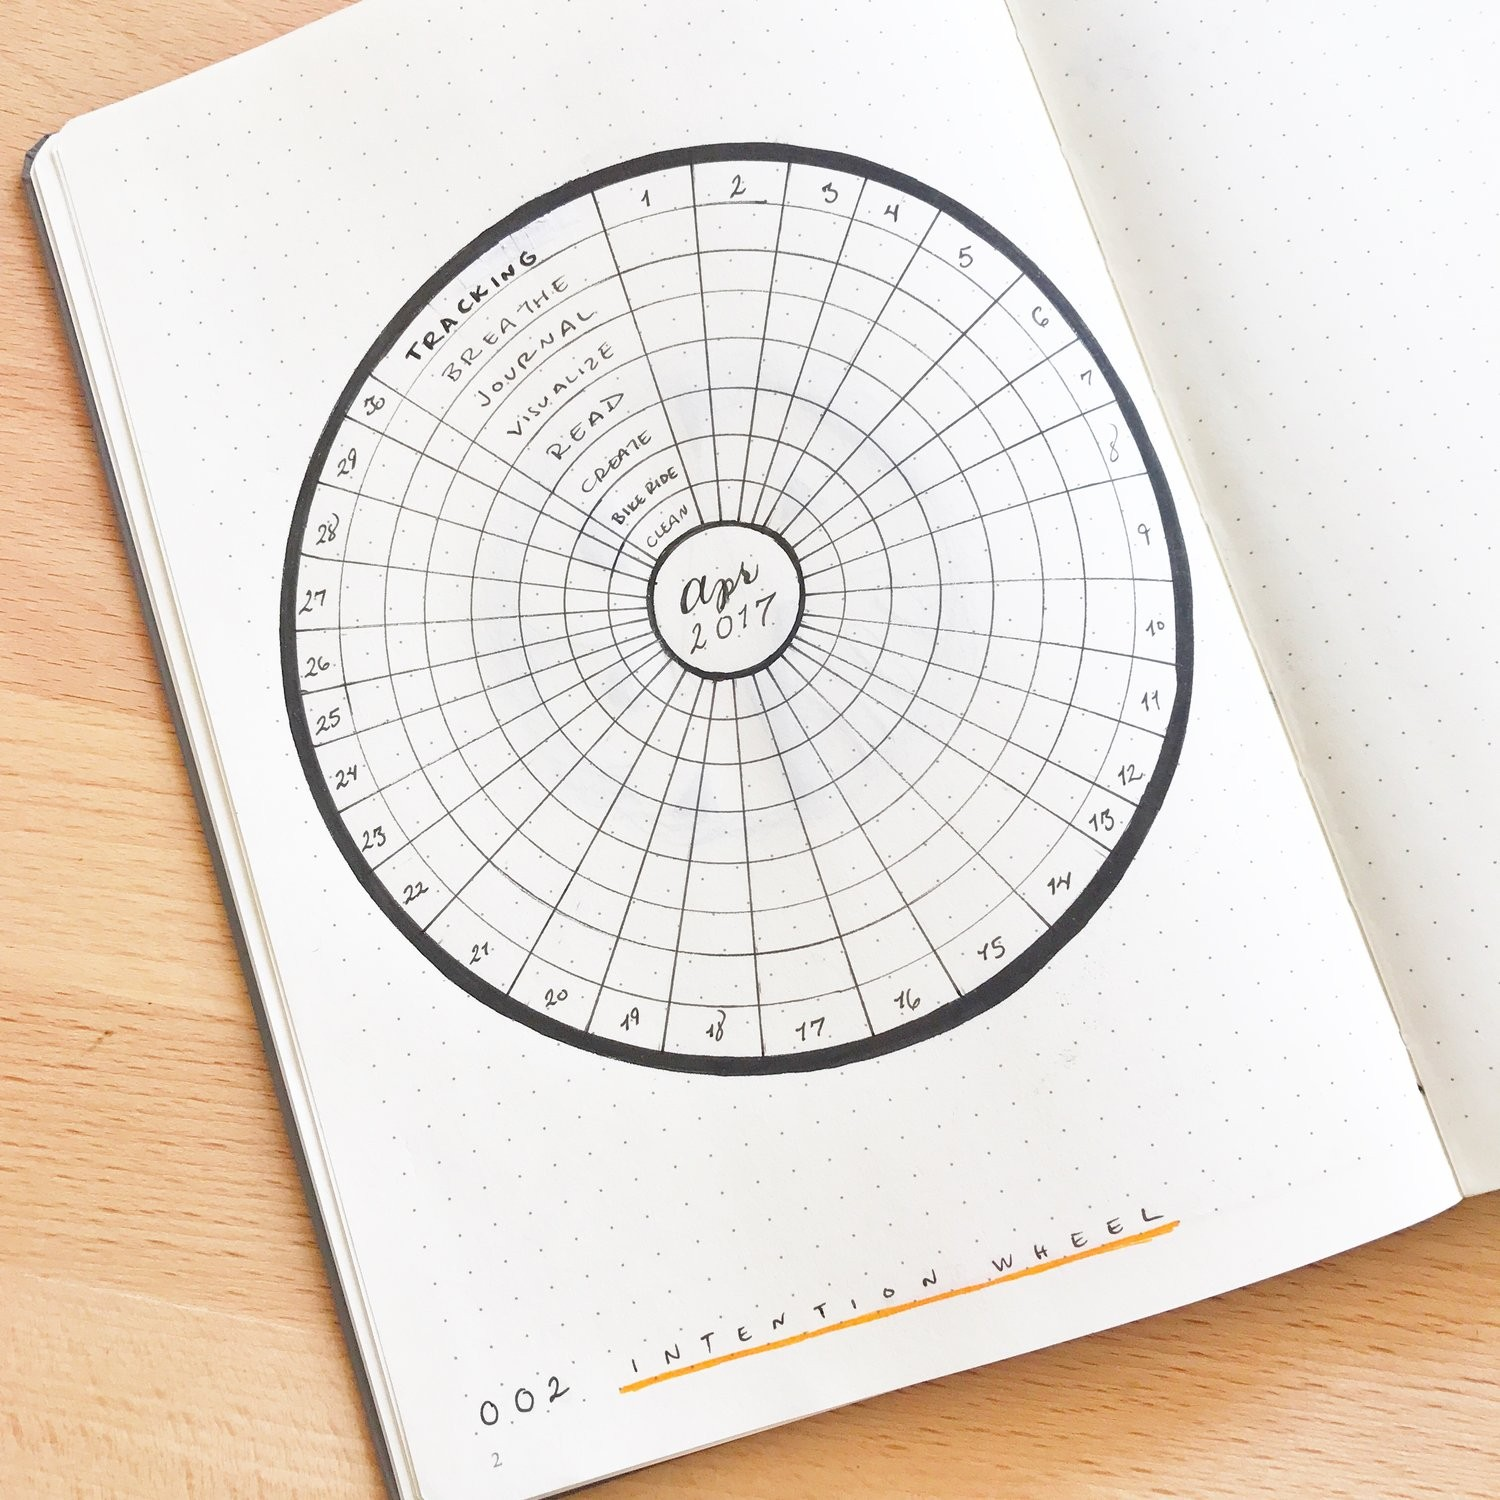 March Calendar Blank 2019 Más Arriba-a-fecha the Intention Wheel A New Kind Of Tracker for Your Bullet Journal Of March Calendar Blank 2019 Más Recientemente Liberado Art Prints Lunar Calendar 2019